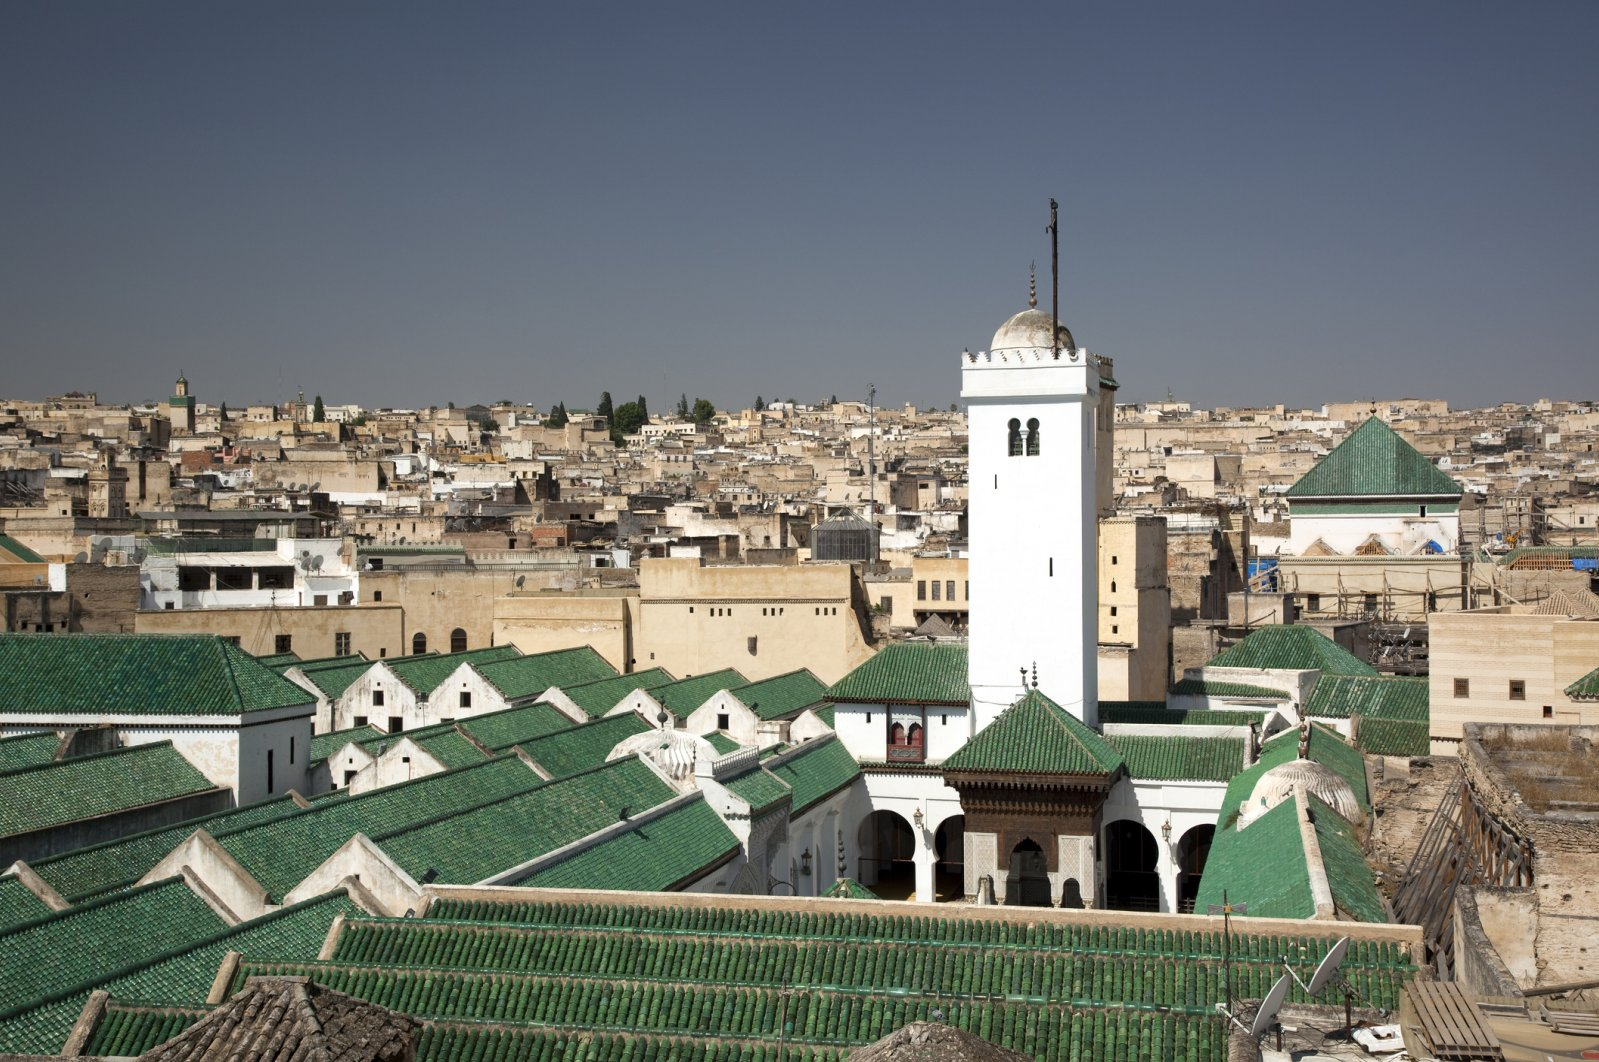 The University of al-Qarawiyyin is the first degree-awarding educational institution in the world. (iStock Photo)